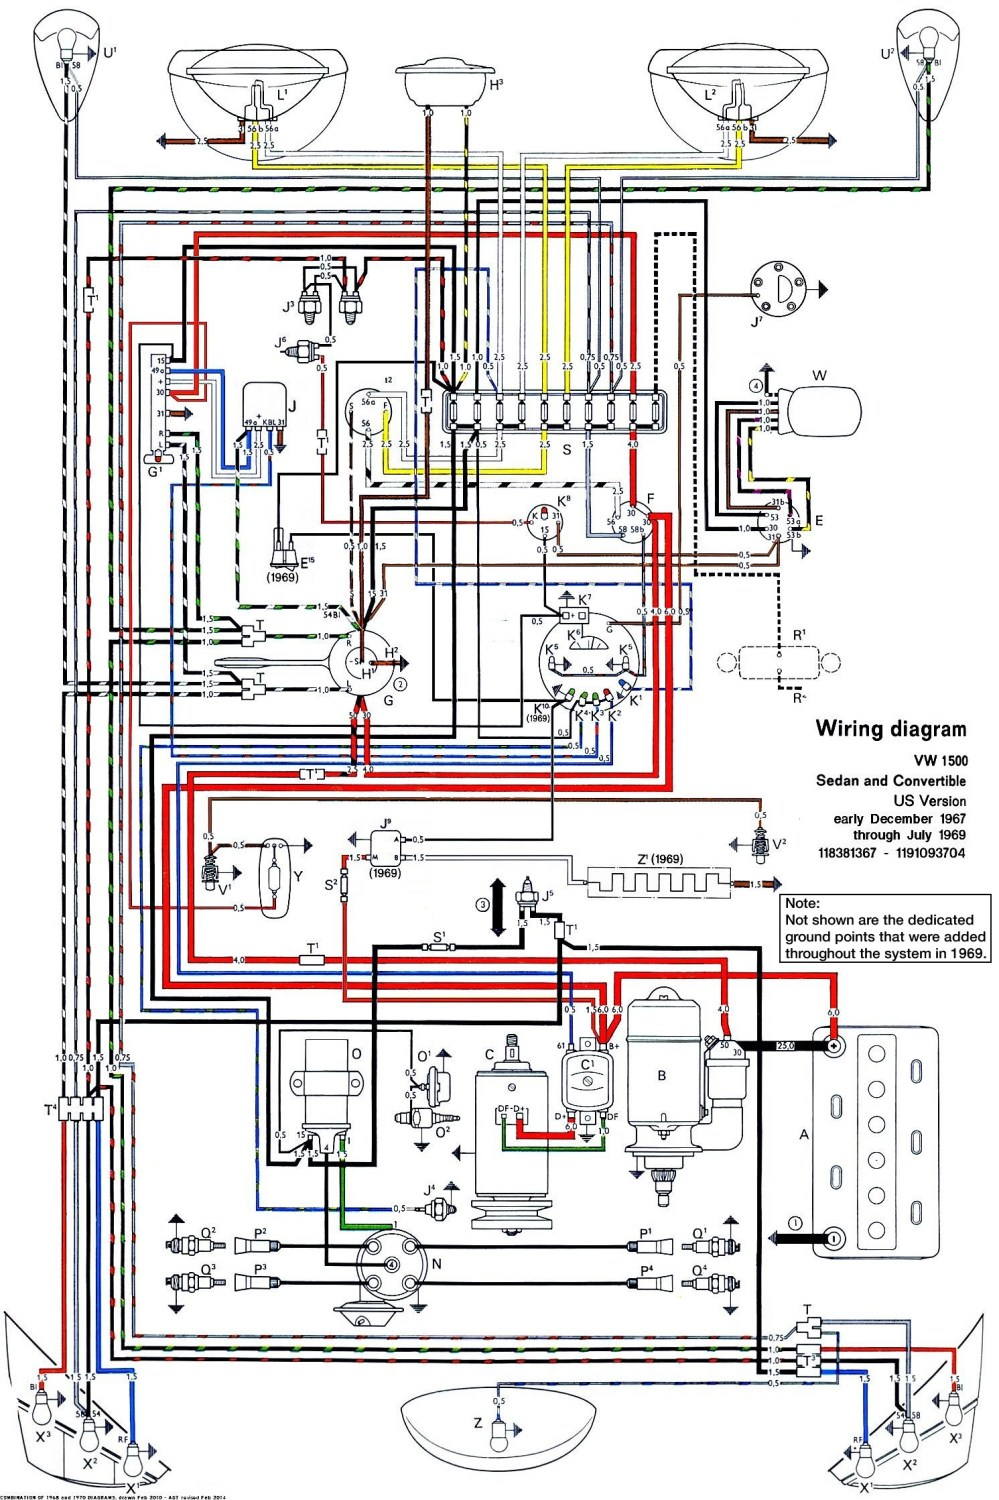 medium resolution of the samba wiring diagram wiring diagram1970 vw bug wiring schematic 14